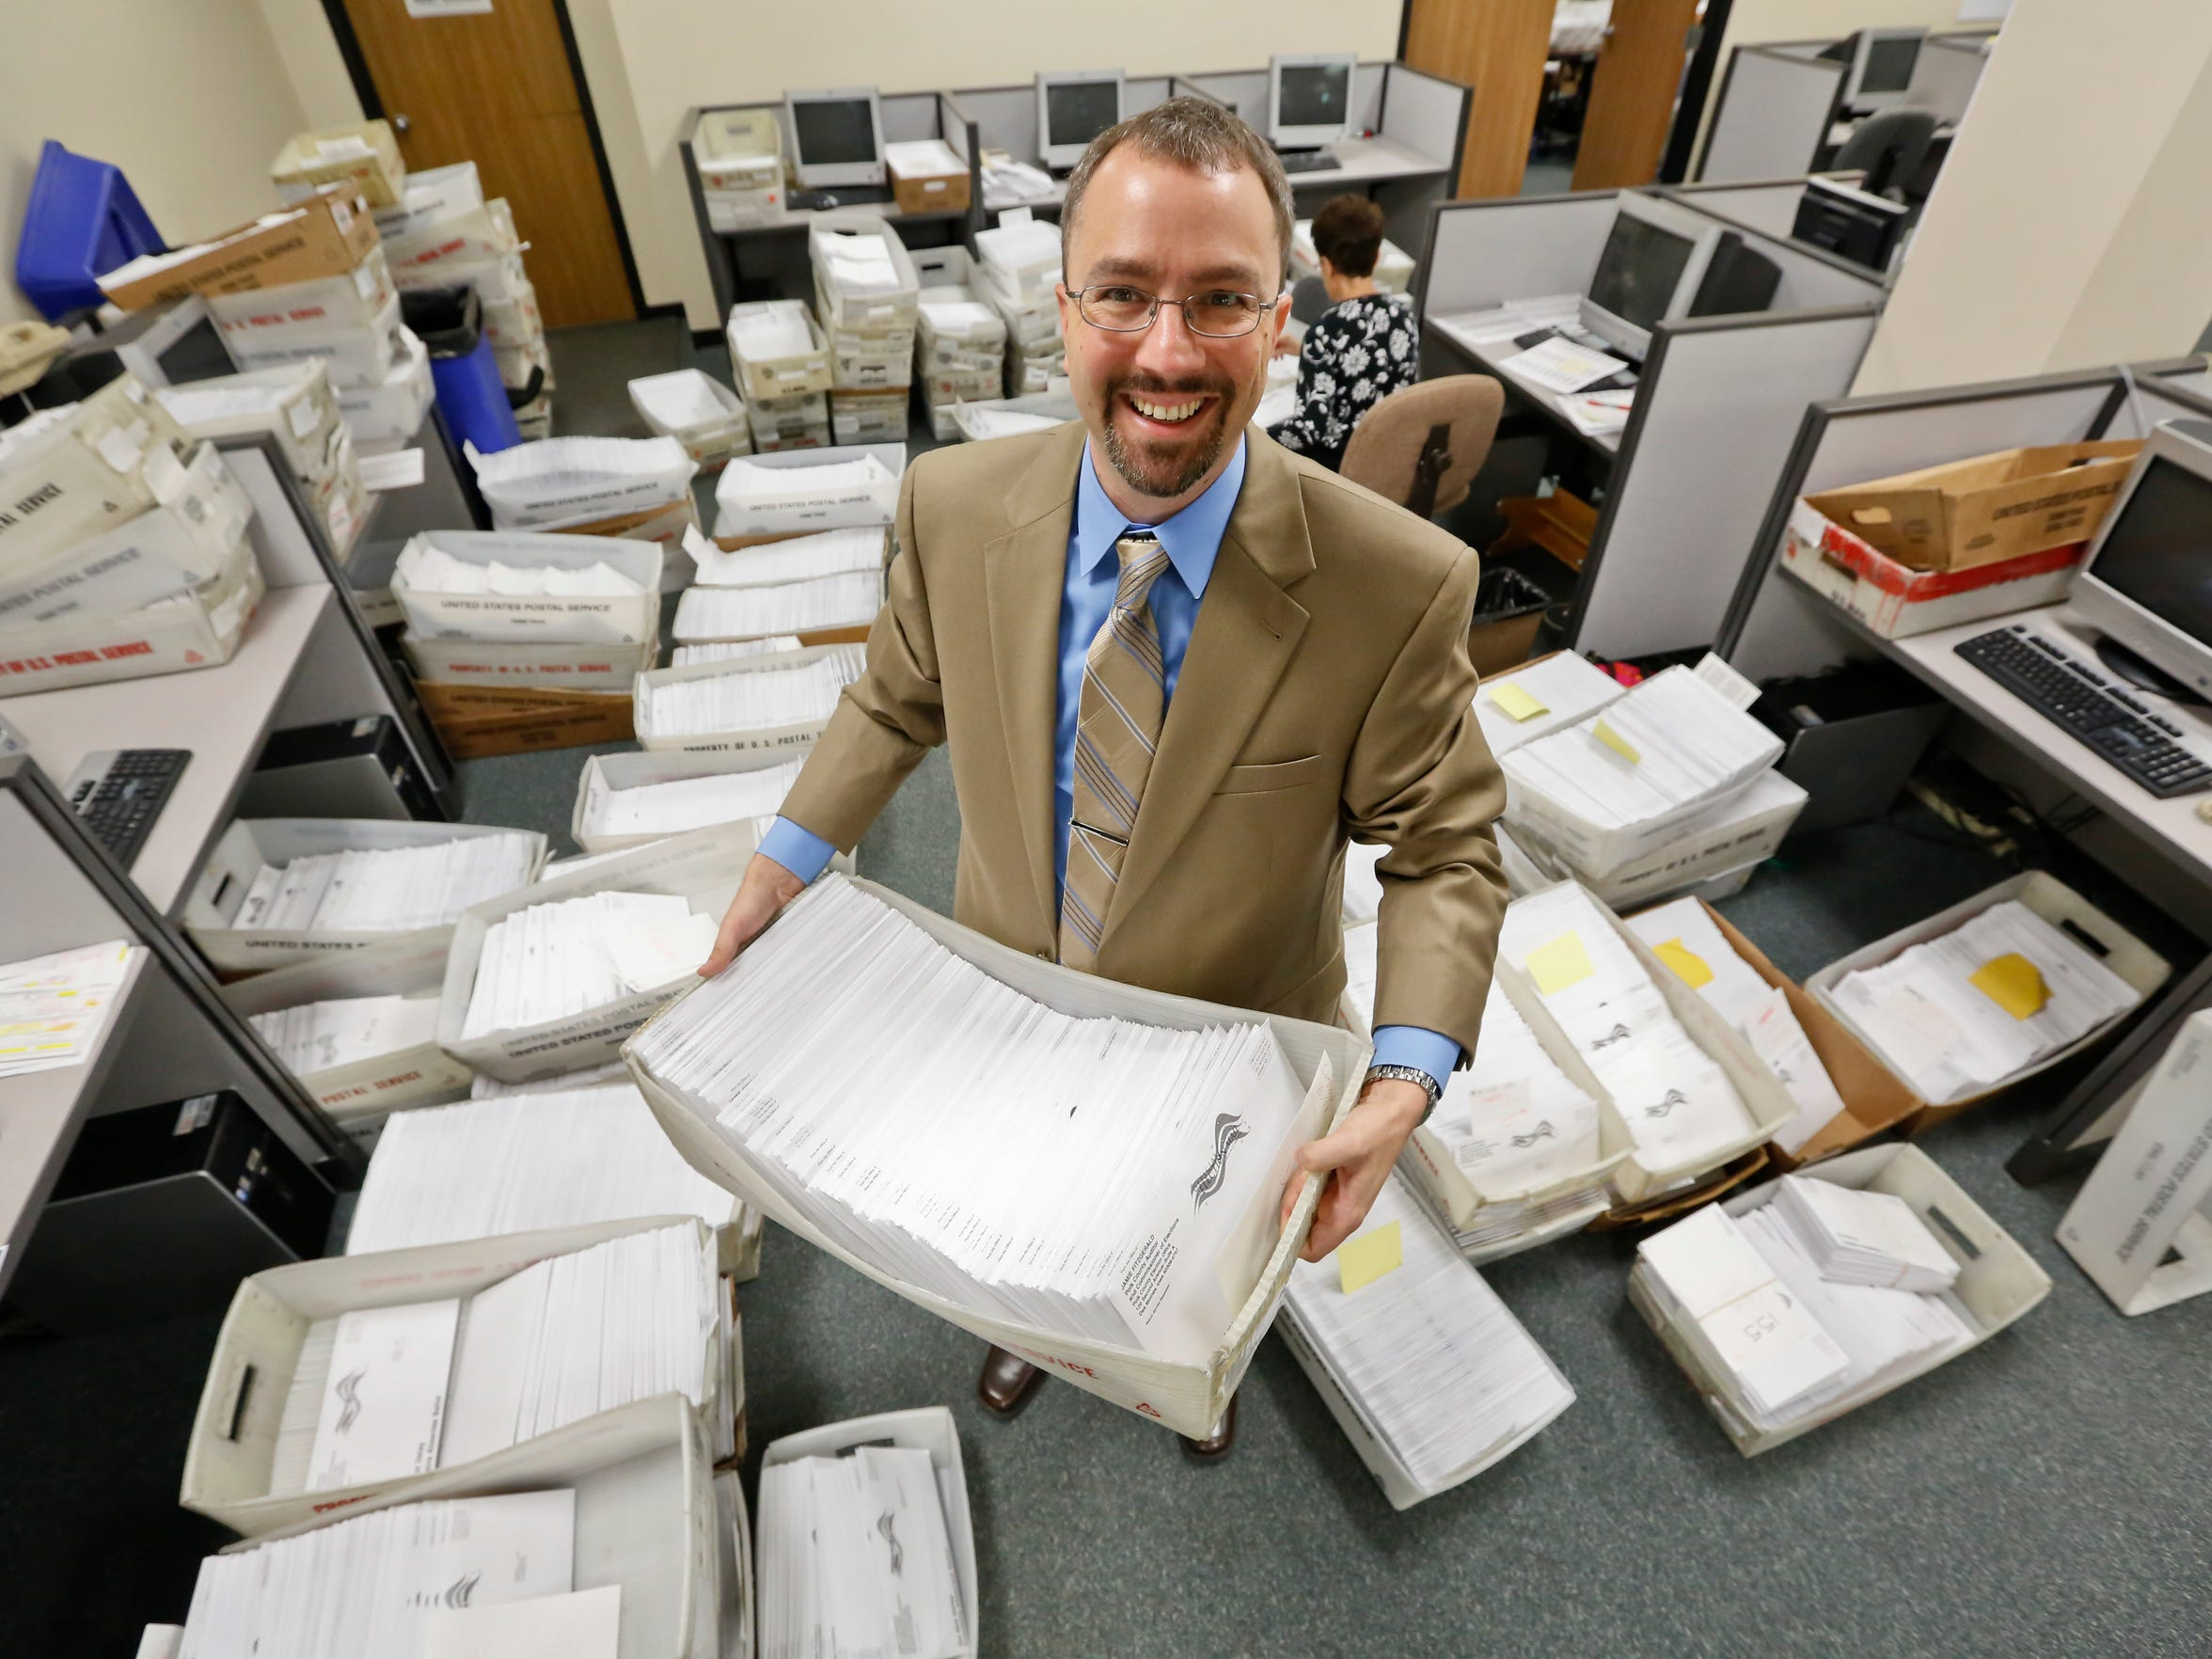 Polk County Auditor Jamie Fitzgerald with some of the 26,000 absentee ballots his office received as part of early voting in 2012.